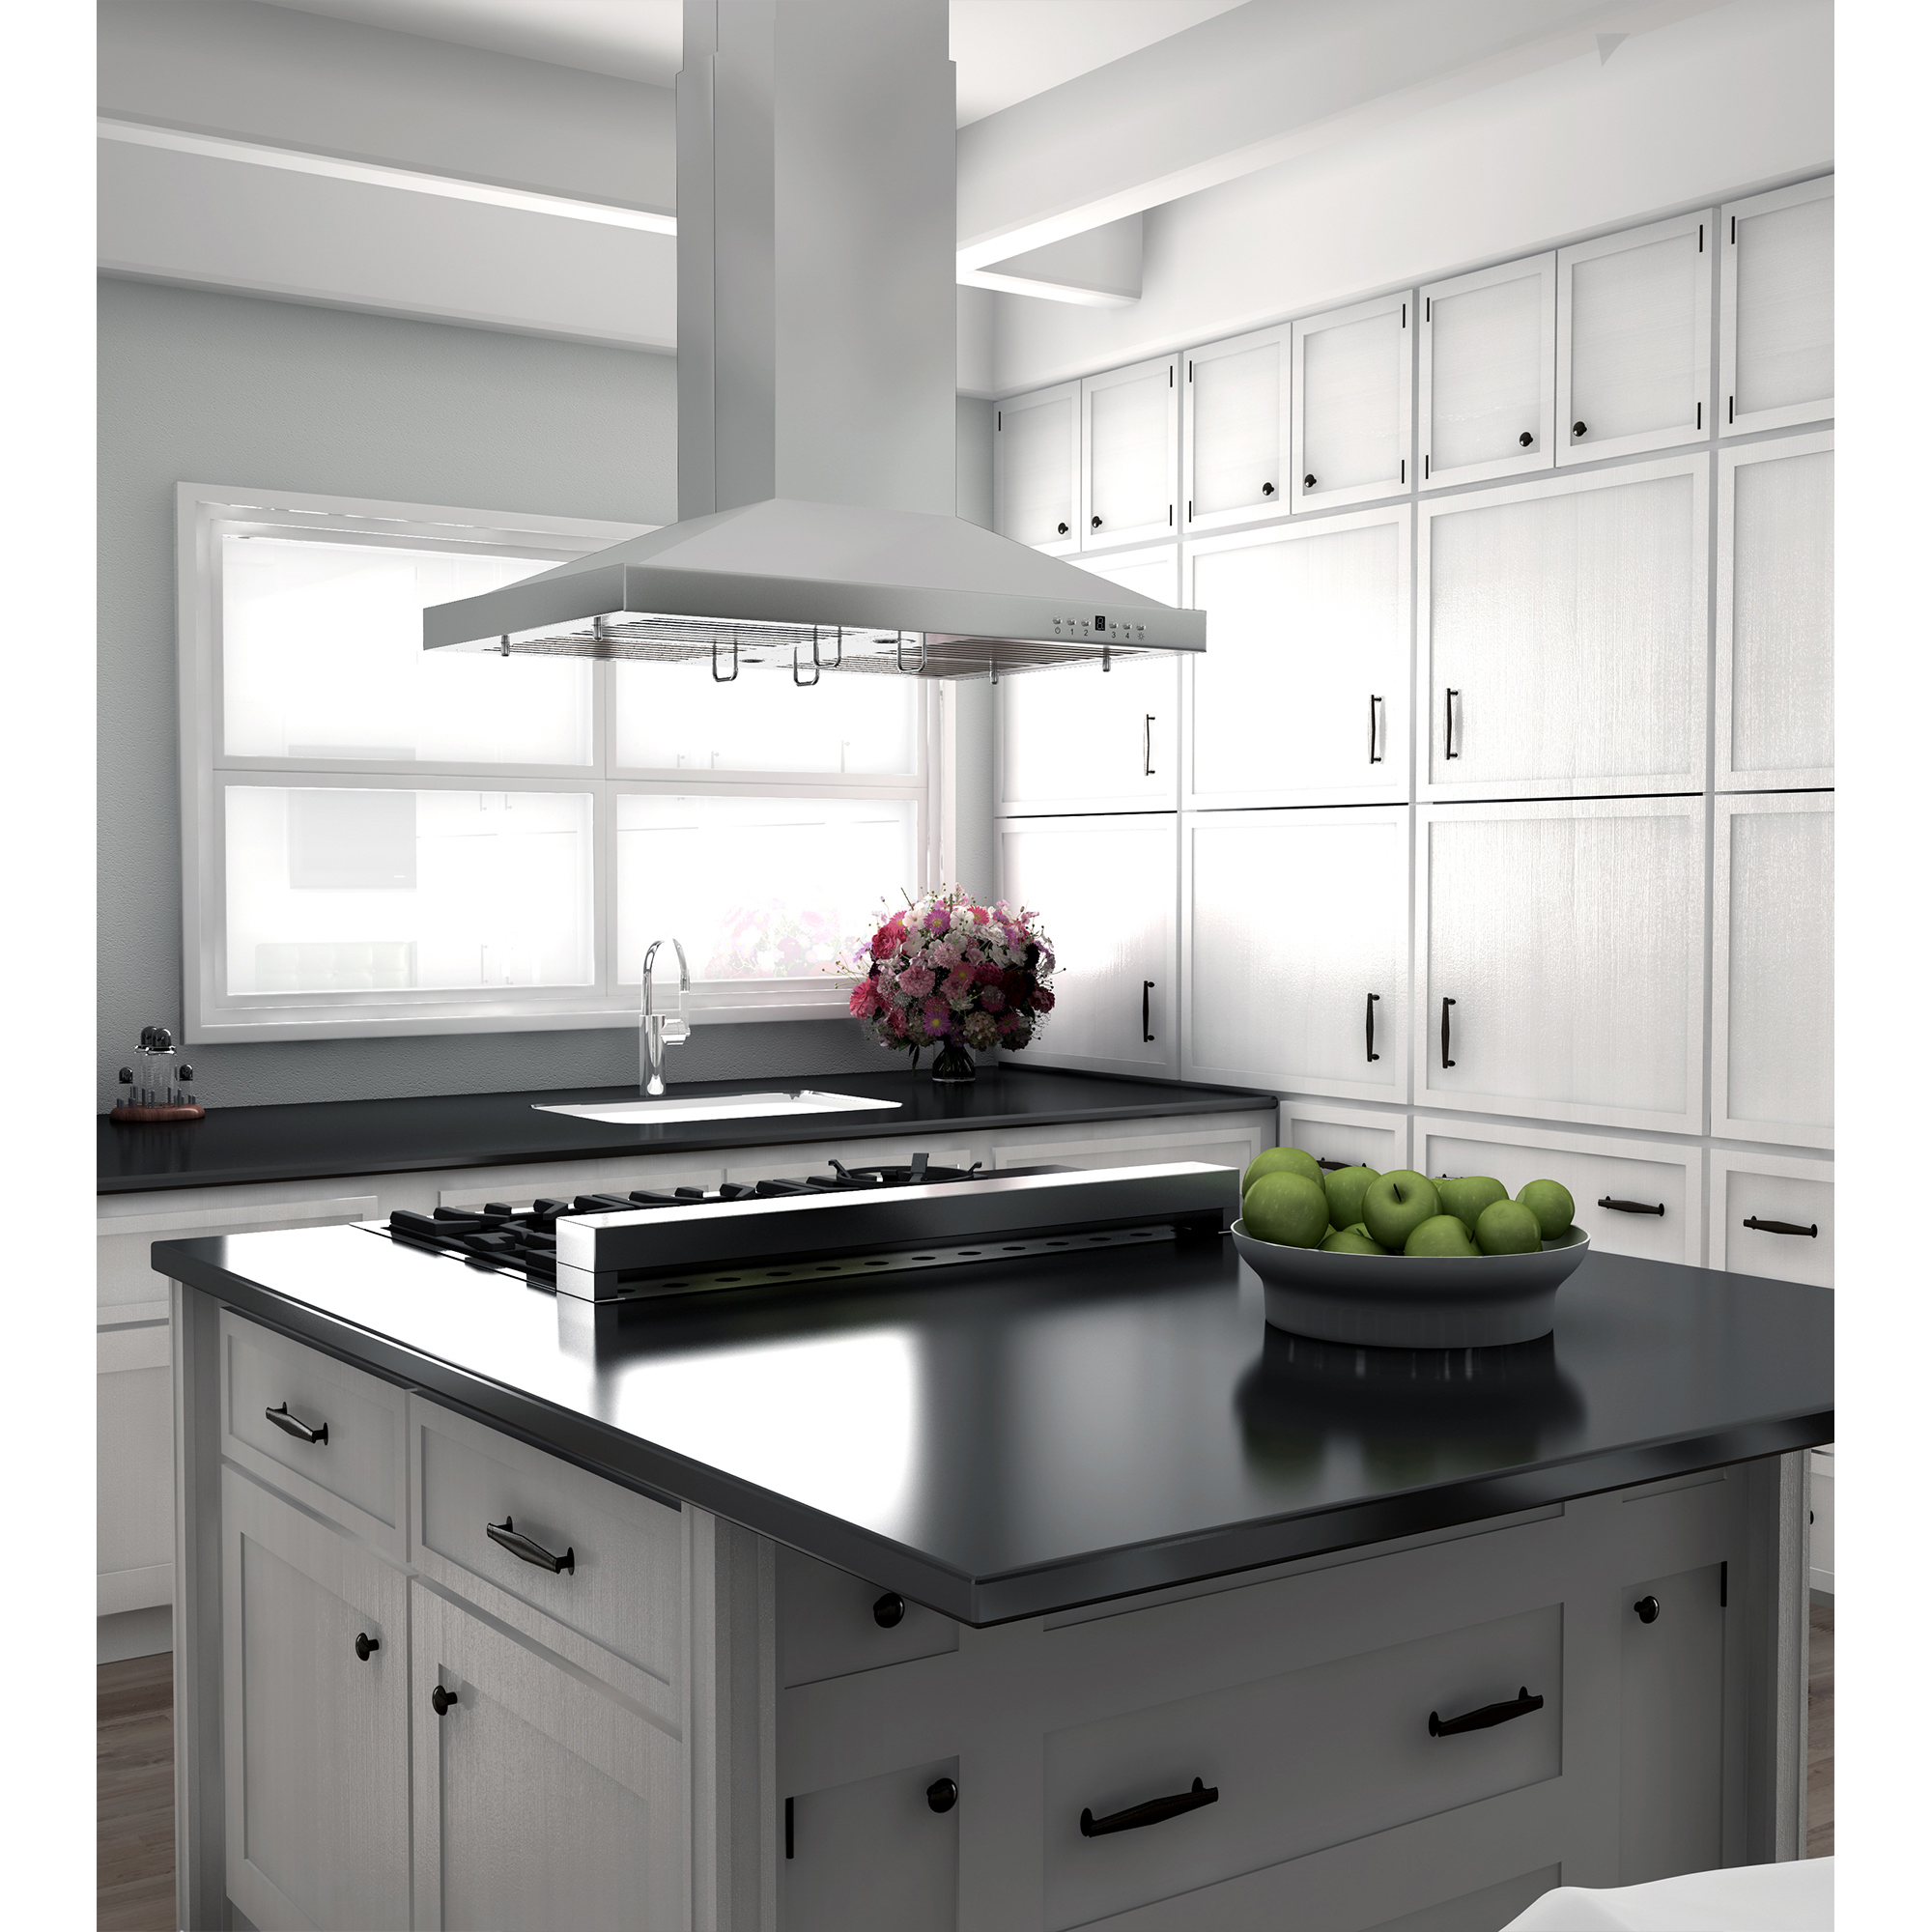 zline-stainless-steel-island-range-hood-GL2i-kitchen-new-2-seam.jpg